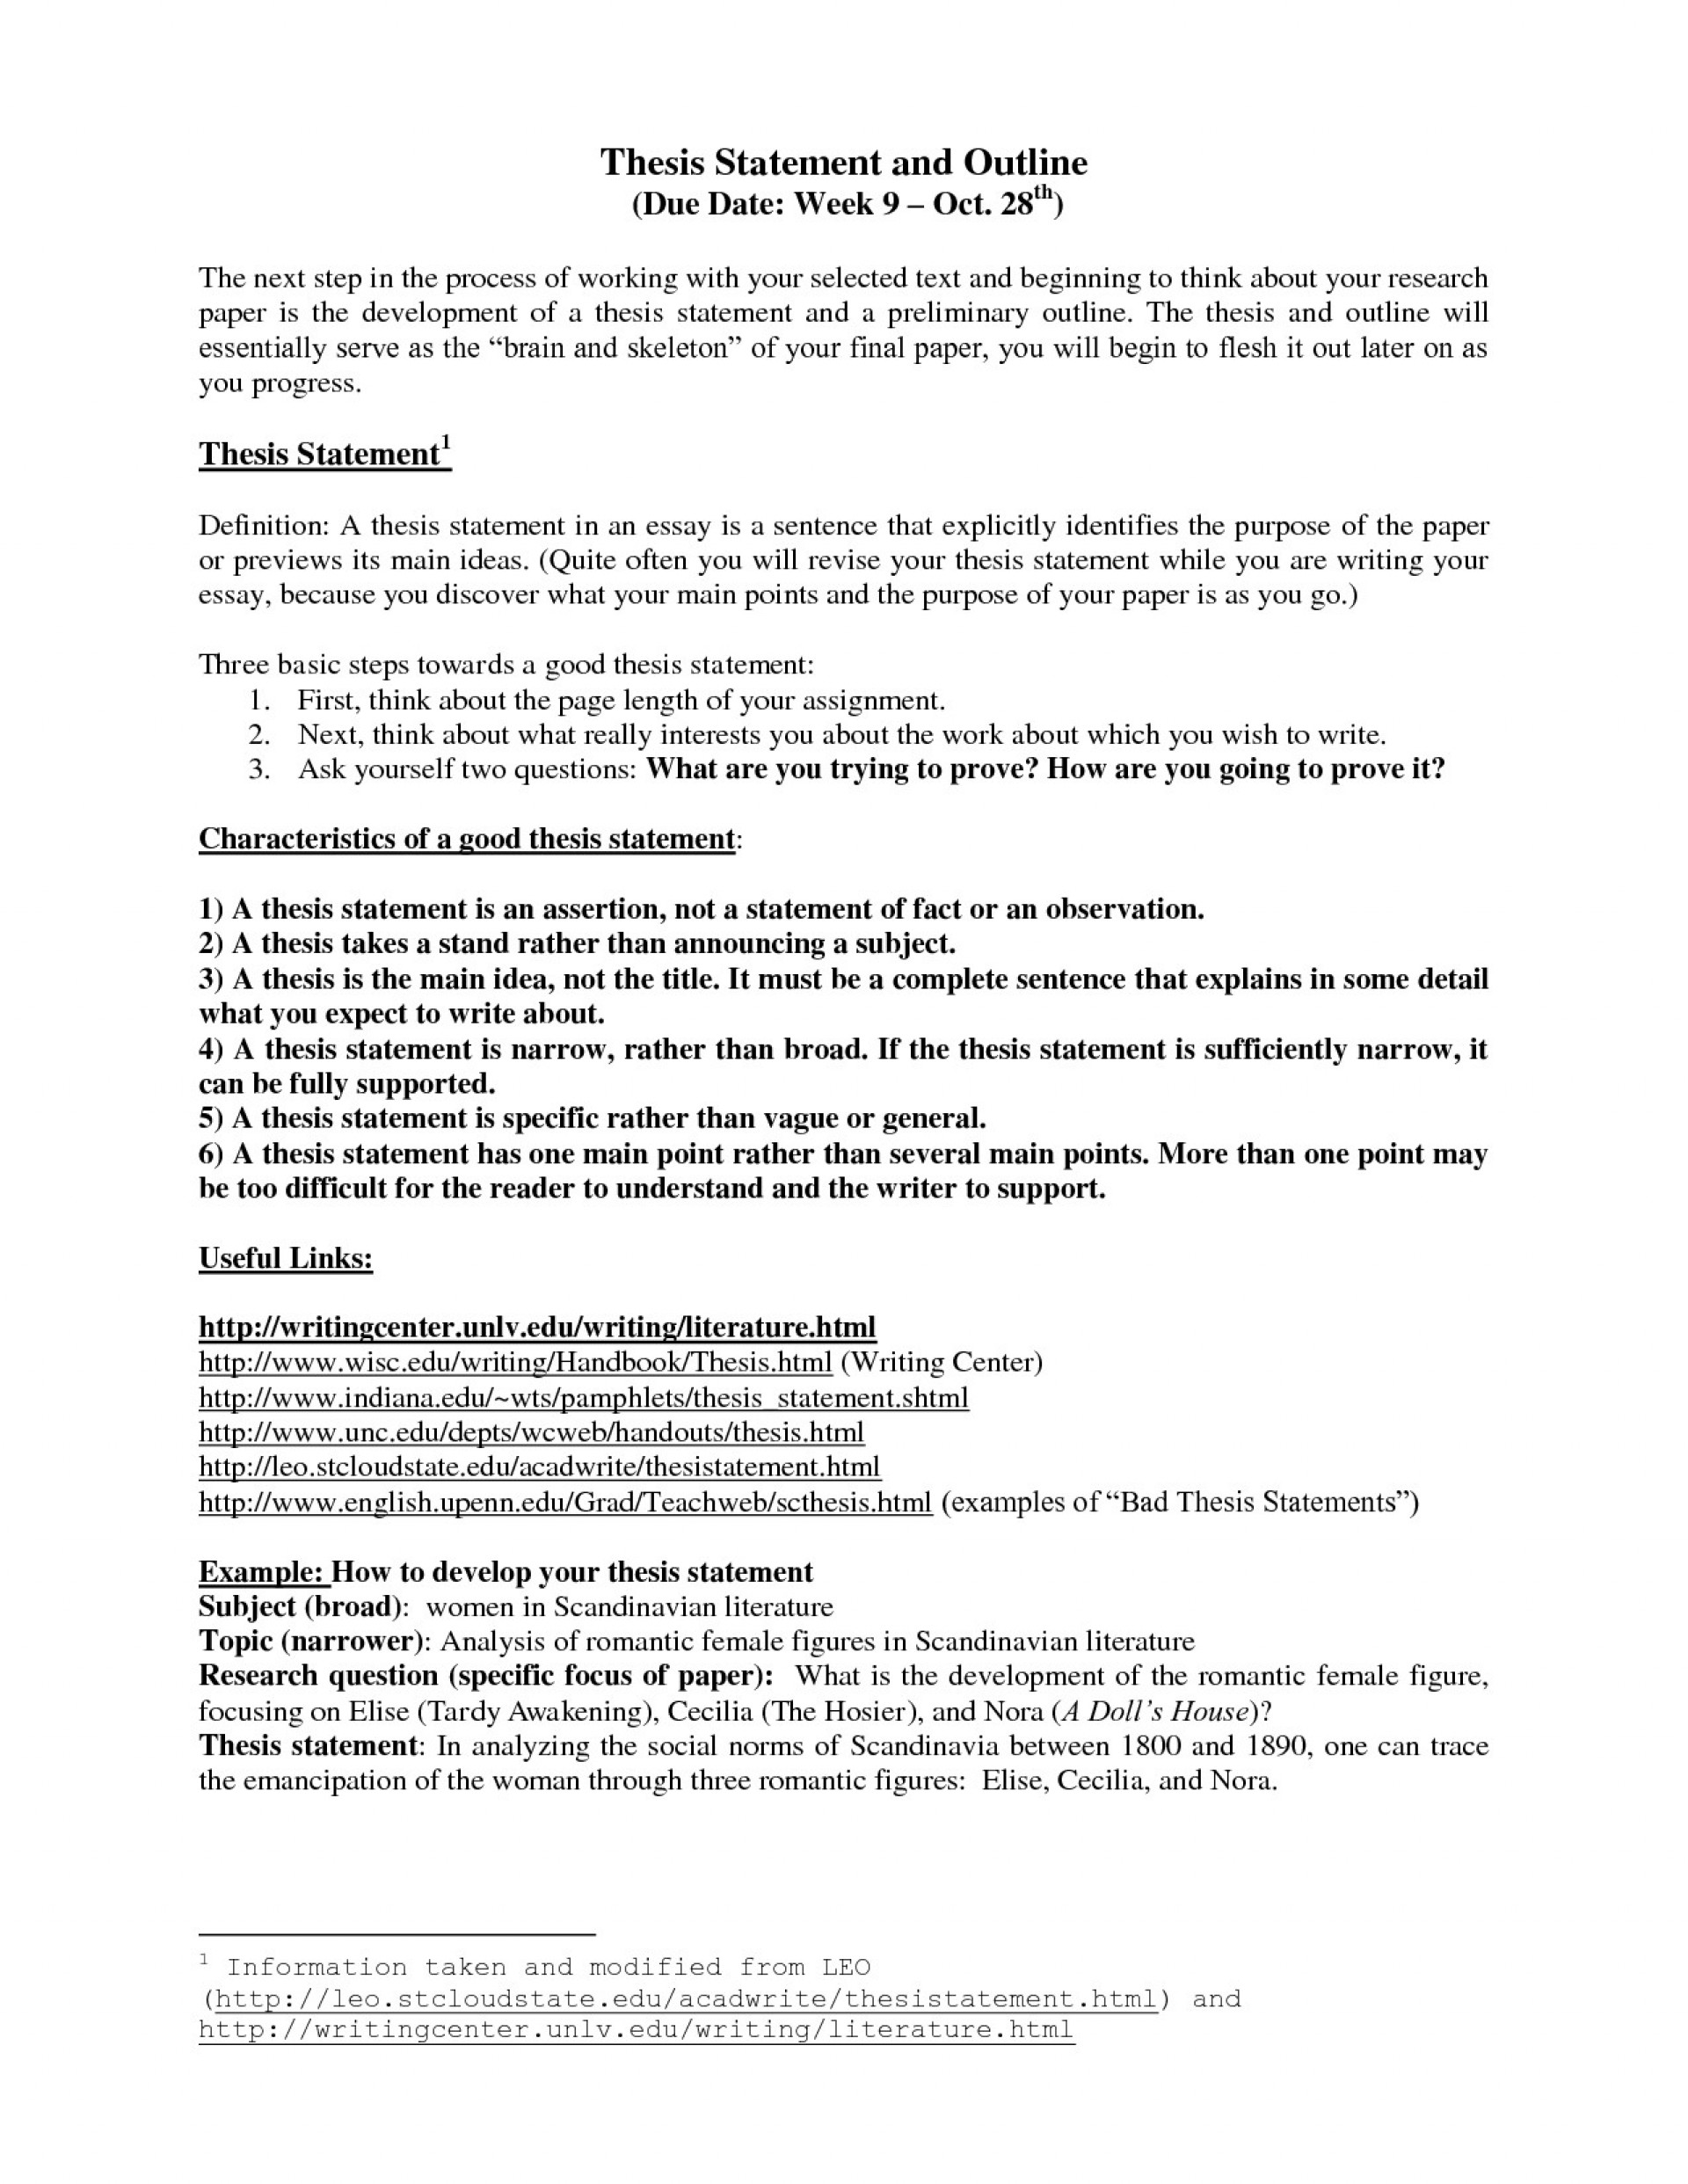 003 Essay Example Cute Easy Thesis Statement Examples Pics For Your Argumentative Writing Structure How To Write Of On Independence Day Tips Topics Website Pollution Grammar Checker Frightening An Effective In Must I Present Both Sides The Issue Brainly 1920